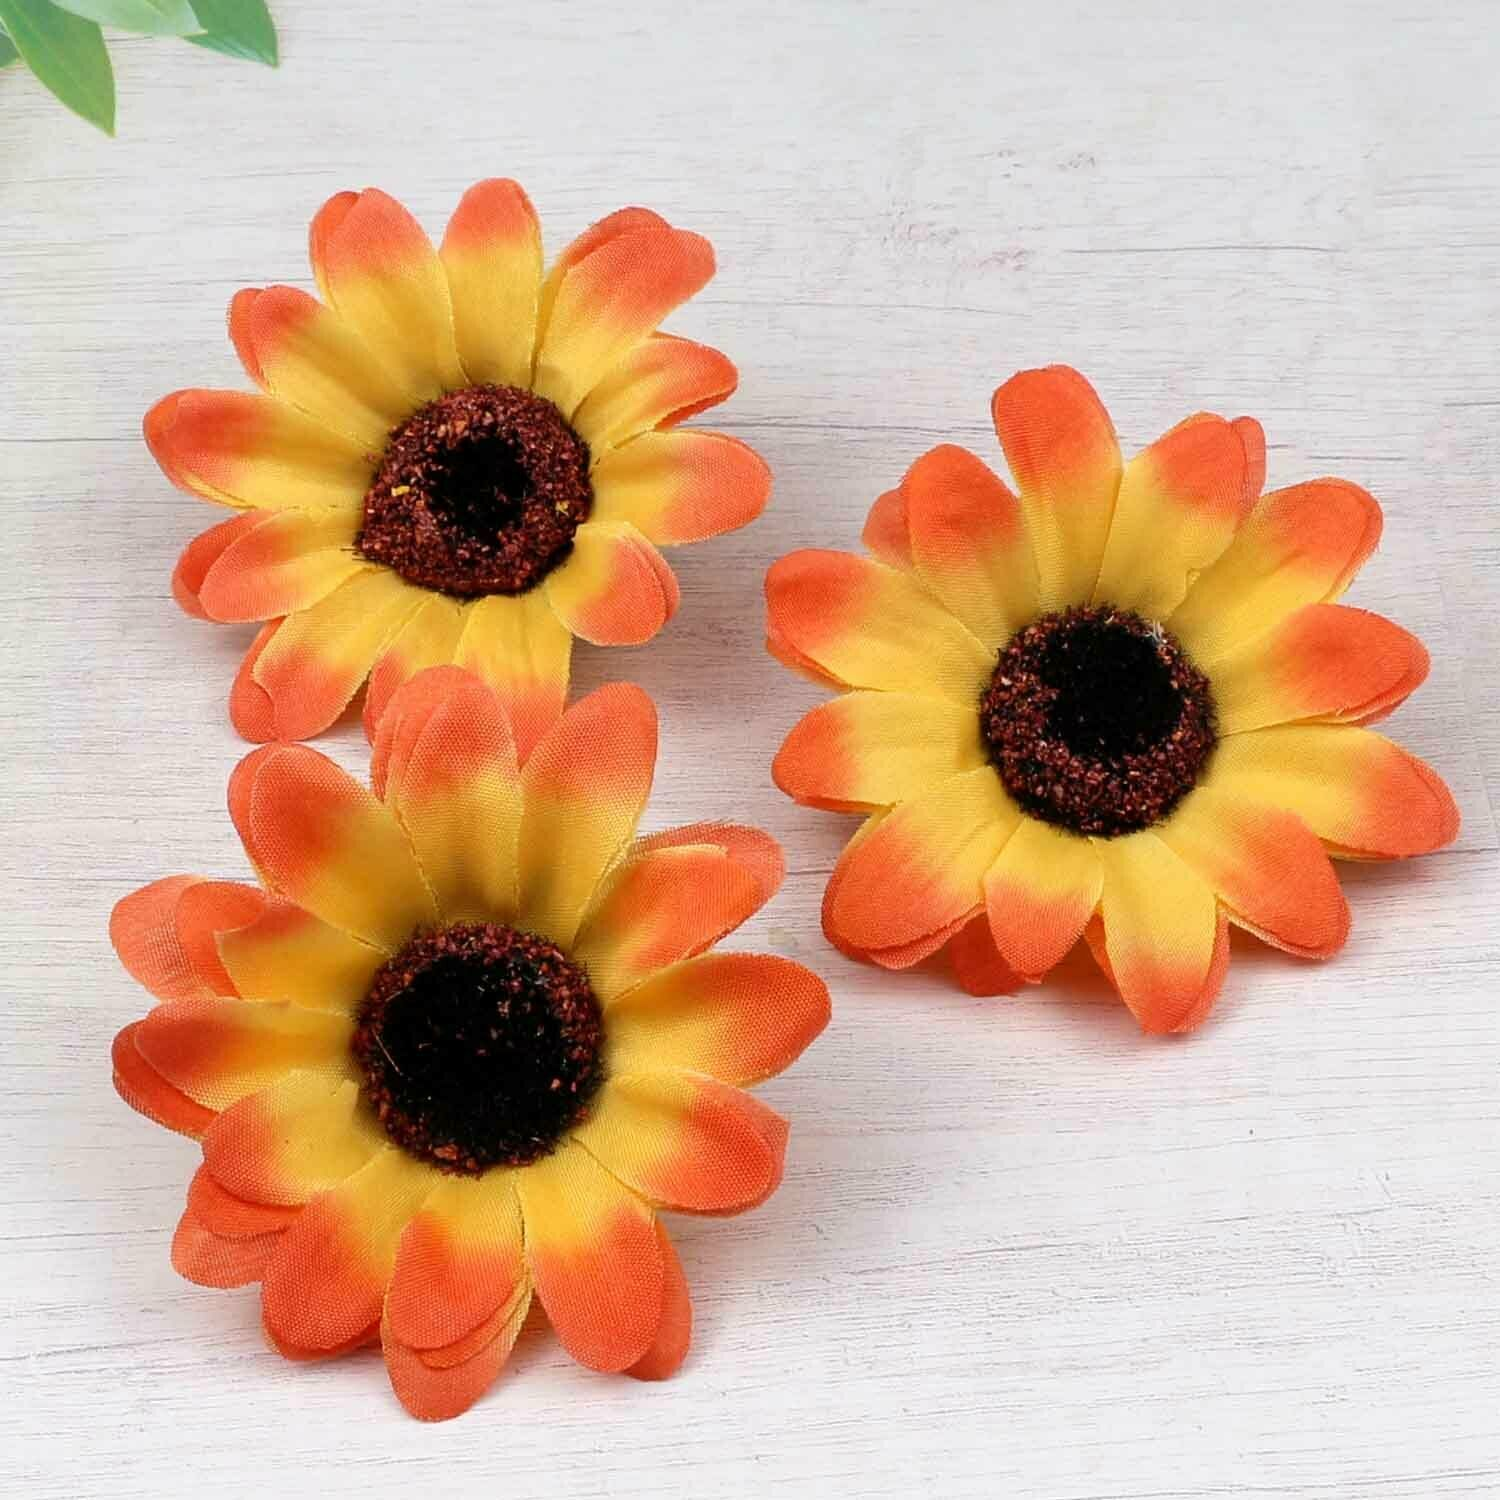 Details about Artificial DIY Silk 7cm Orange Sunflower Flower Head Wreath Home Wedding Decor #flowerheadwreaths